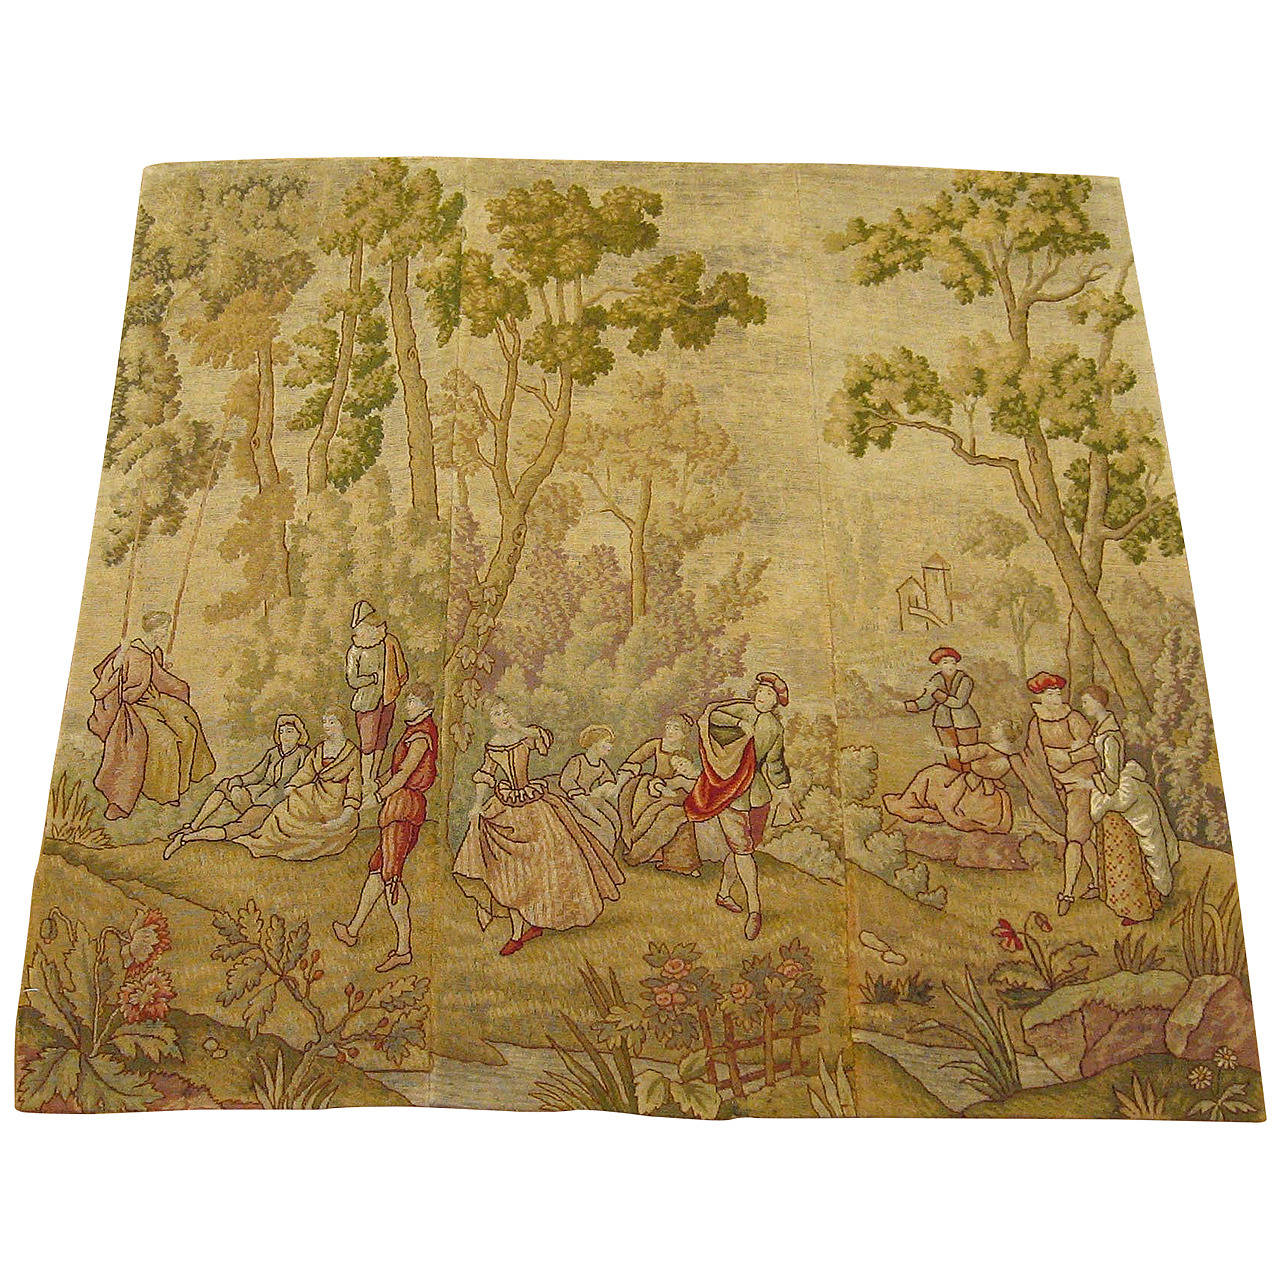 Antique European Needlepoint Tapestry Panels with Courtiers Reveling, circa 1900